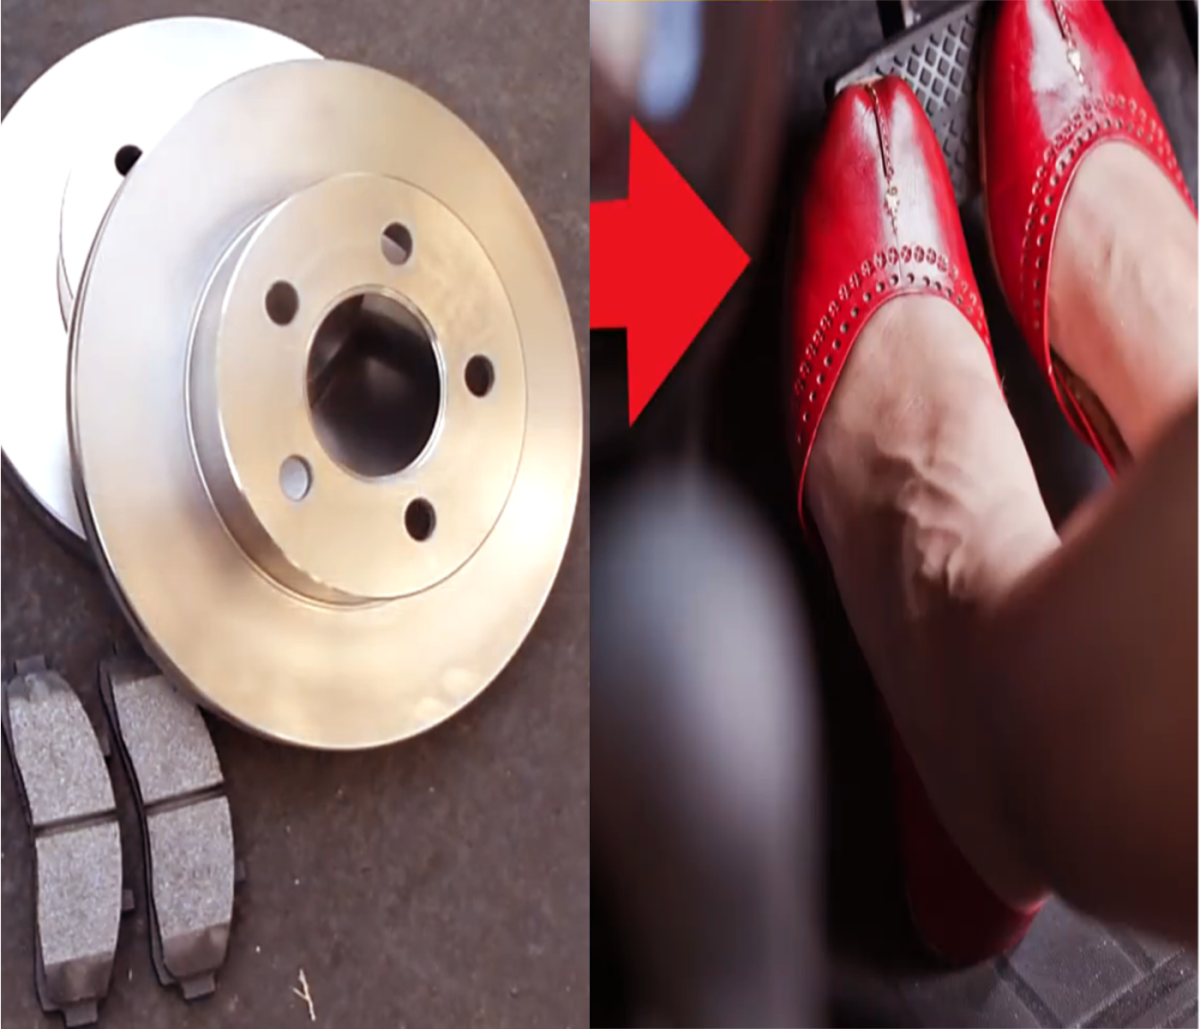 Frequent braking increased the wear and tear on the parts that make up the braking system, decreasing the efficiency of these systems as well as their lifespan.